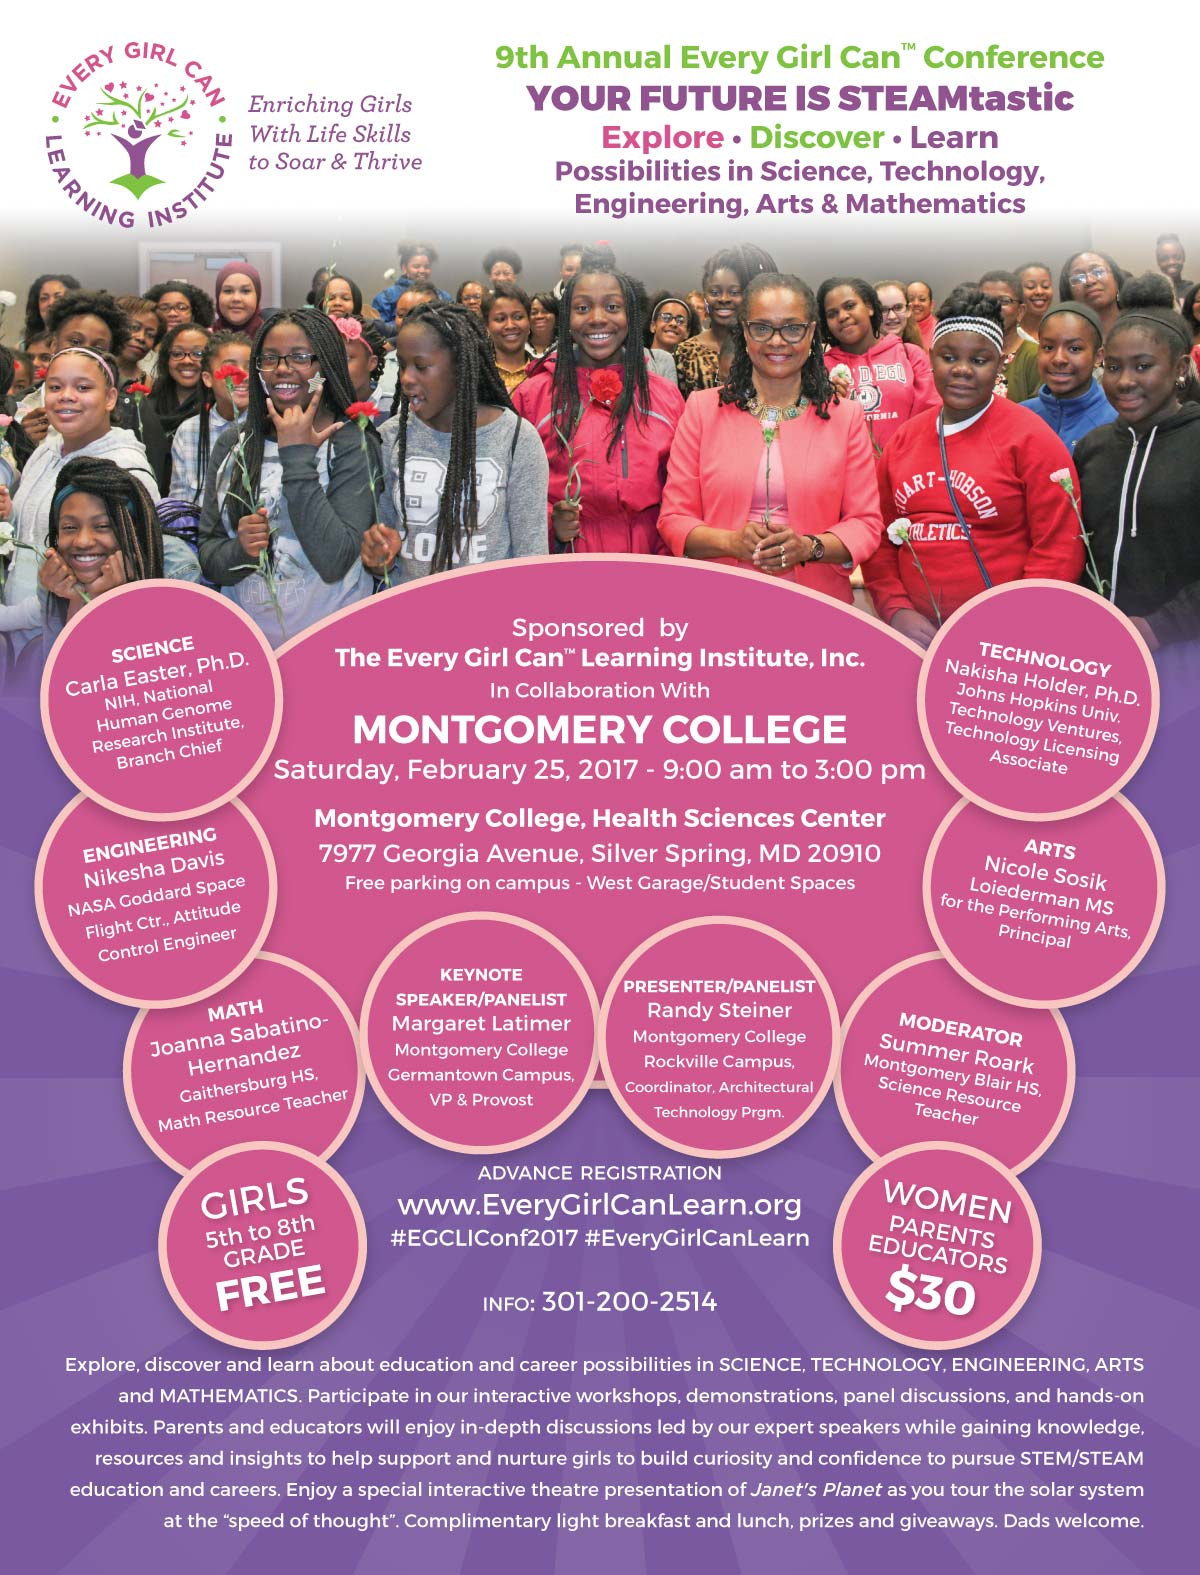 The 9th Annual Every Girl Can™ Conference